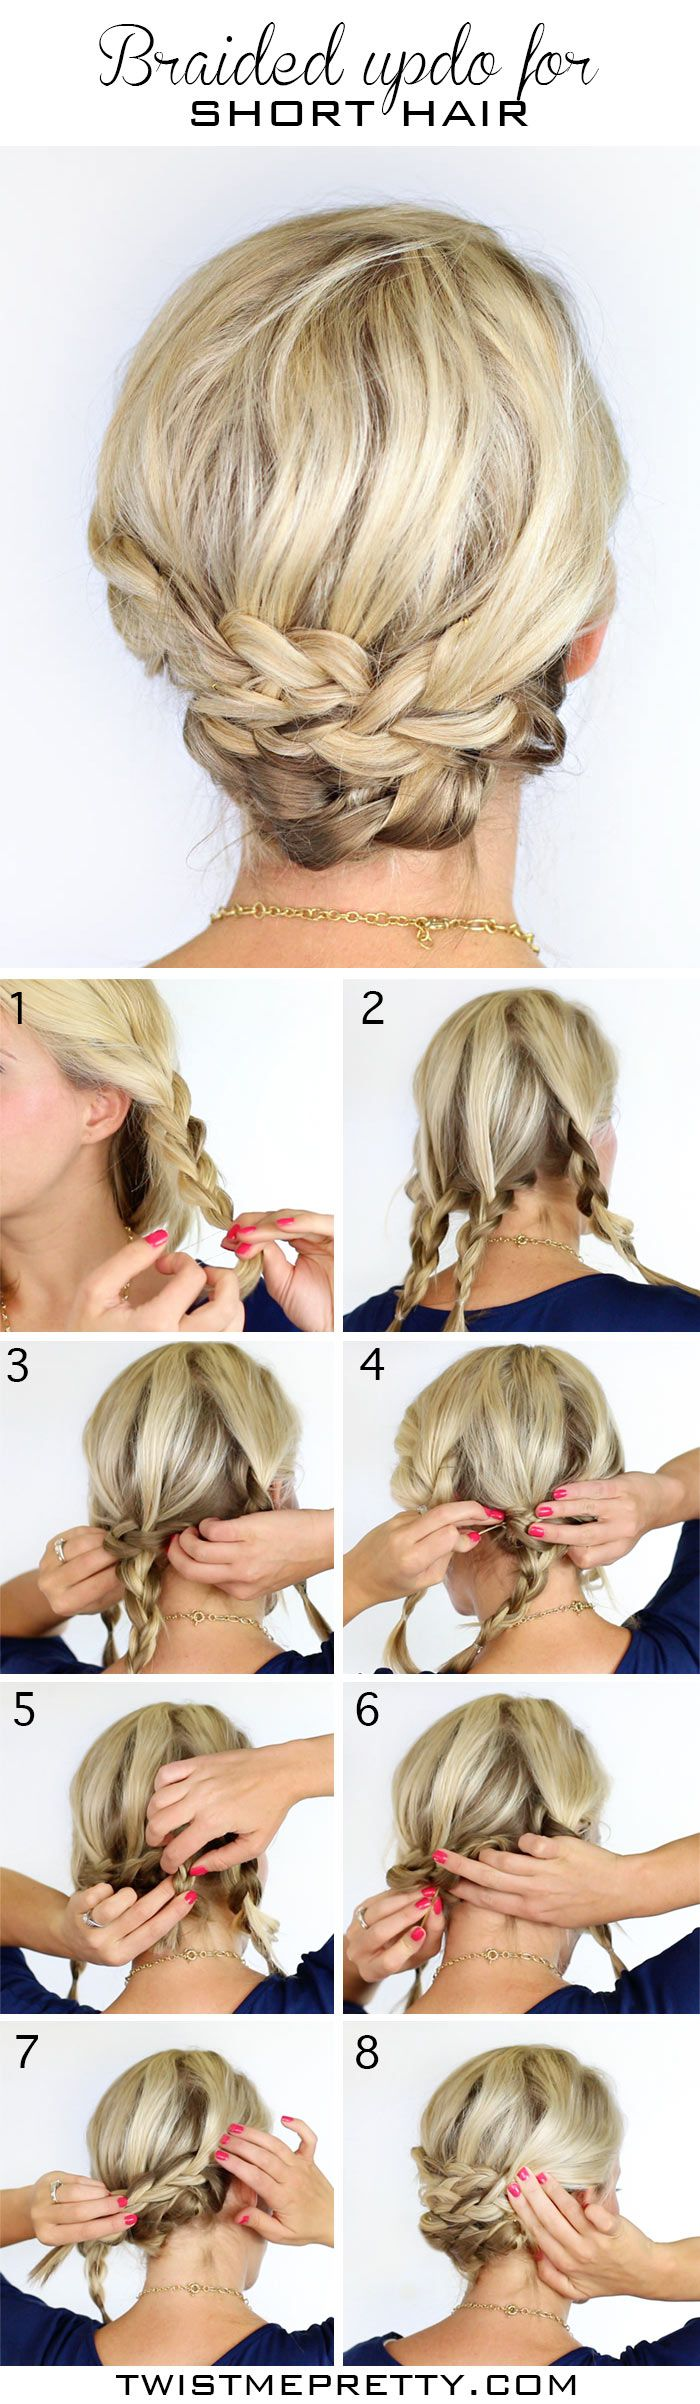 Outstanding 1000 Ideas About Braid Short Hair On Pinterest Highlighted Hair Hairstyle Inspiration Daily Dogsangcom